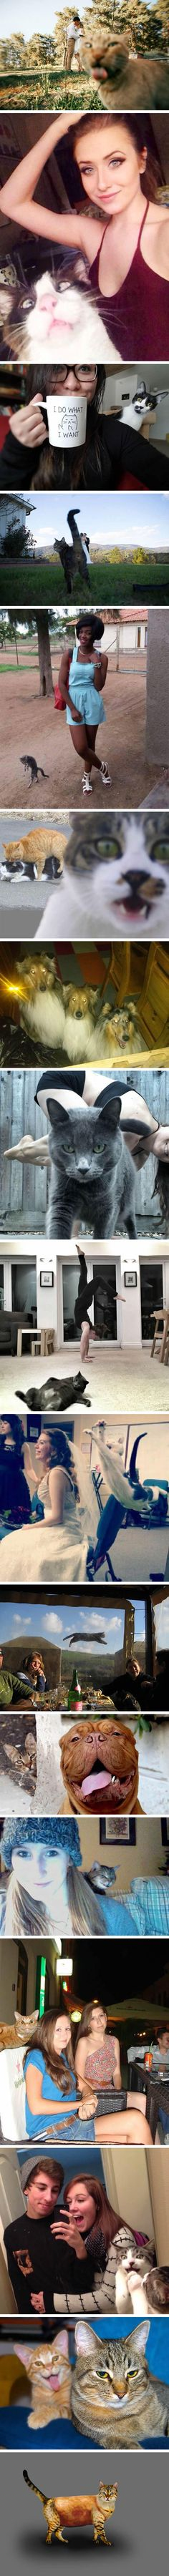 16 Times Asshole Cats Hilariously Photobombed Purrfect Shots - 9GAG